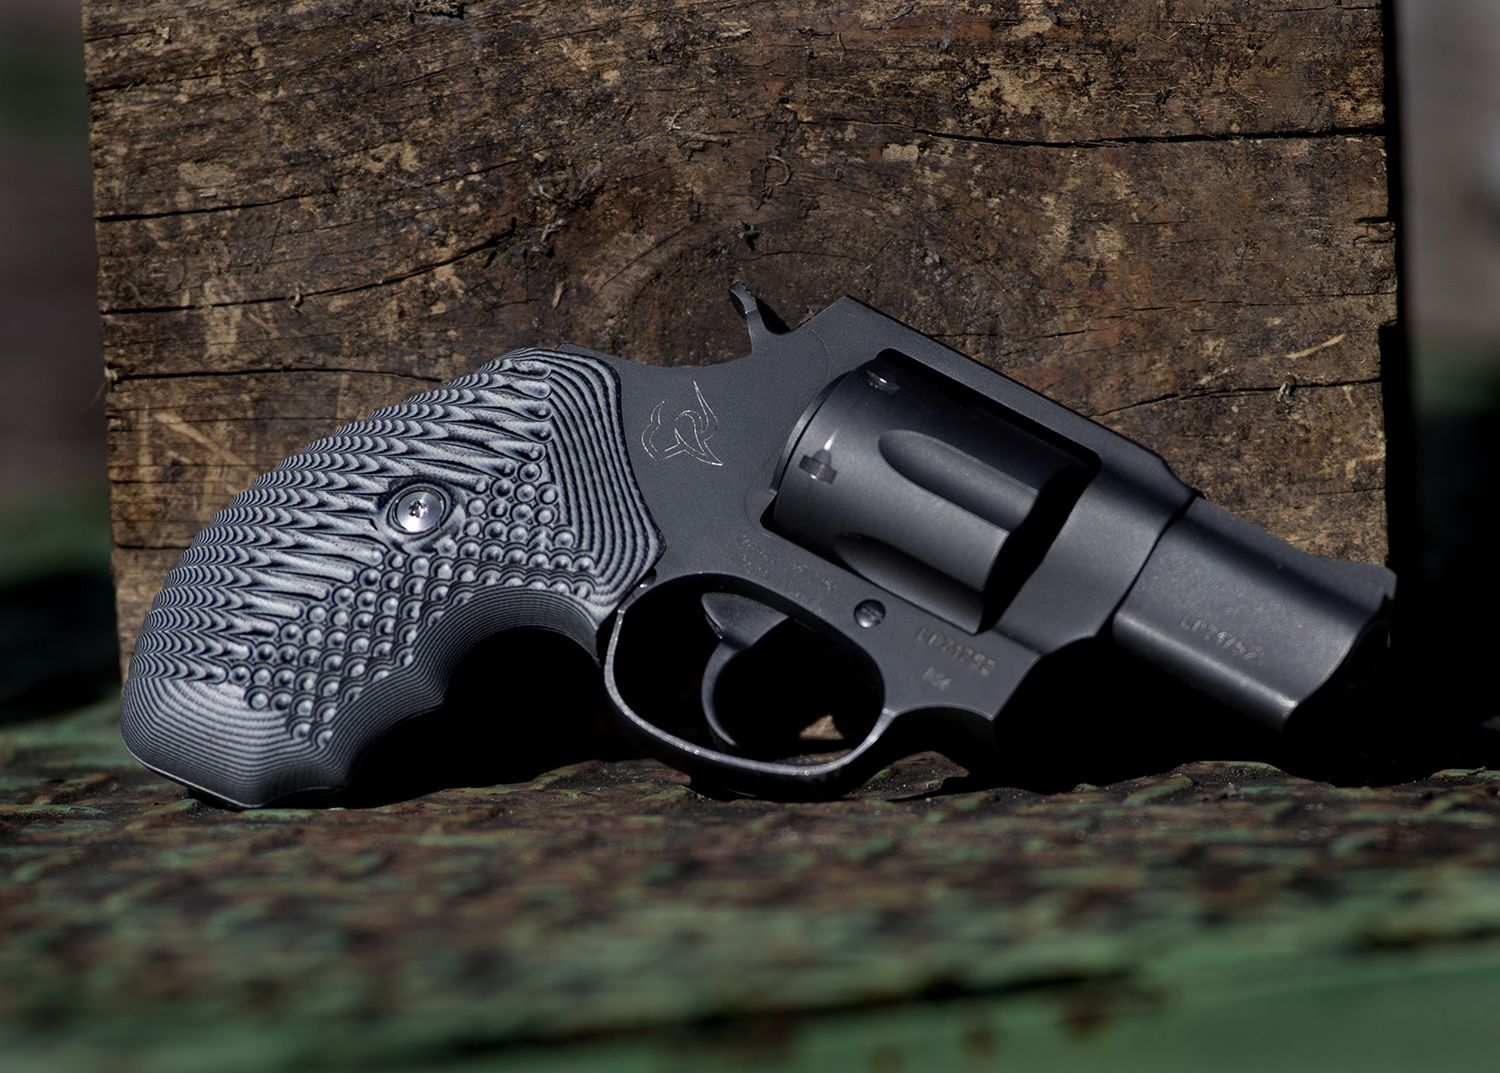 New Operator 2 textured G10 grips are now available for Taurus Small